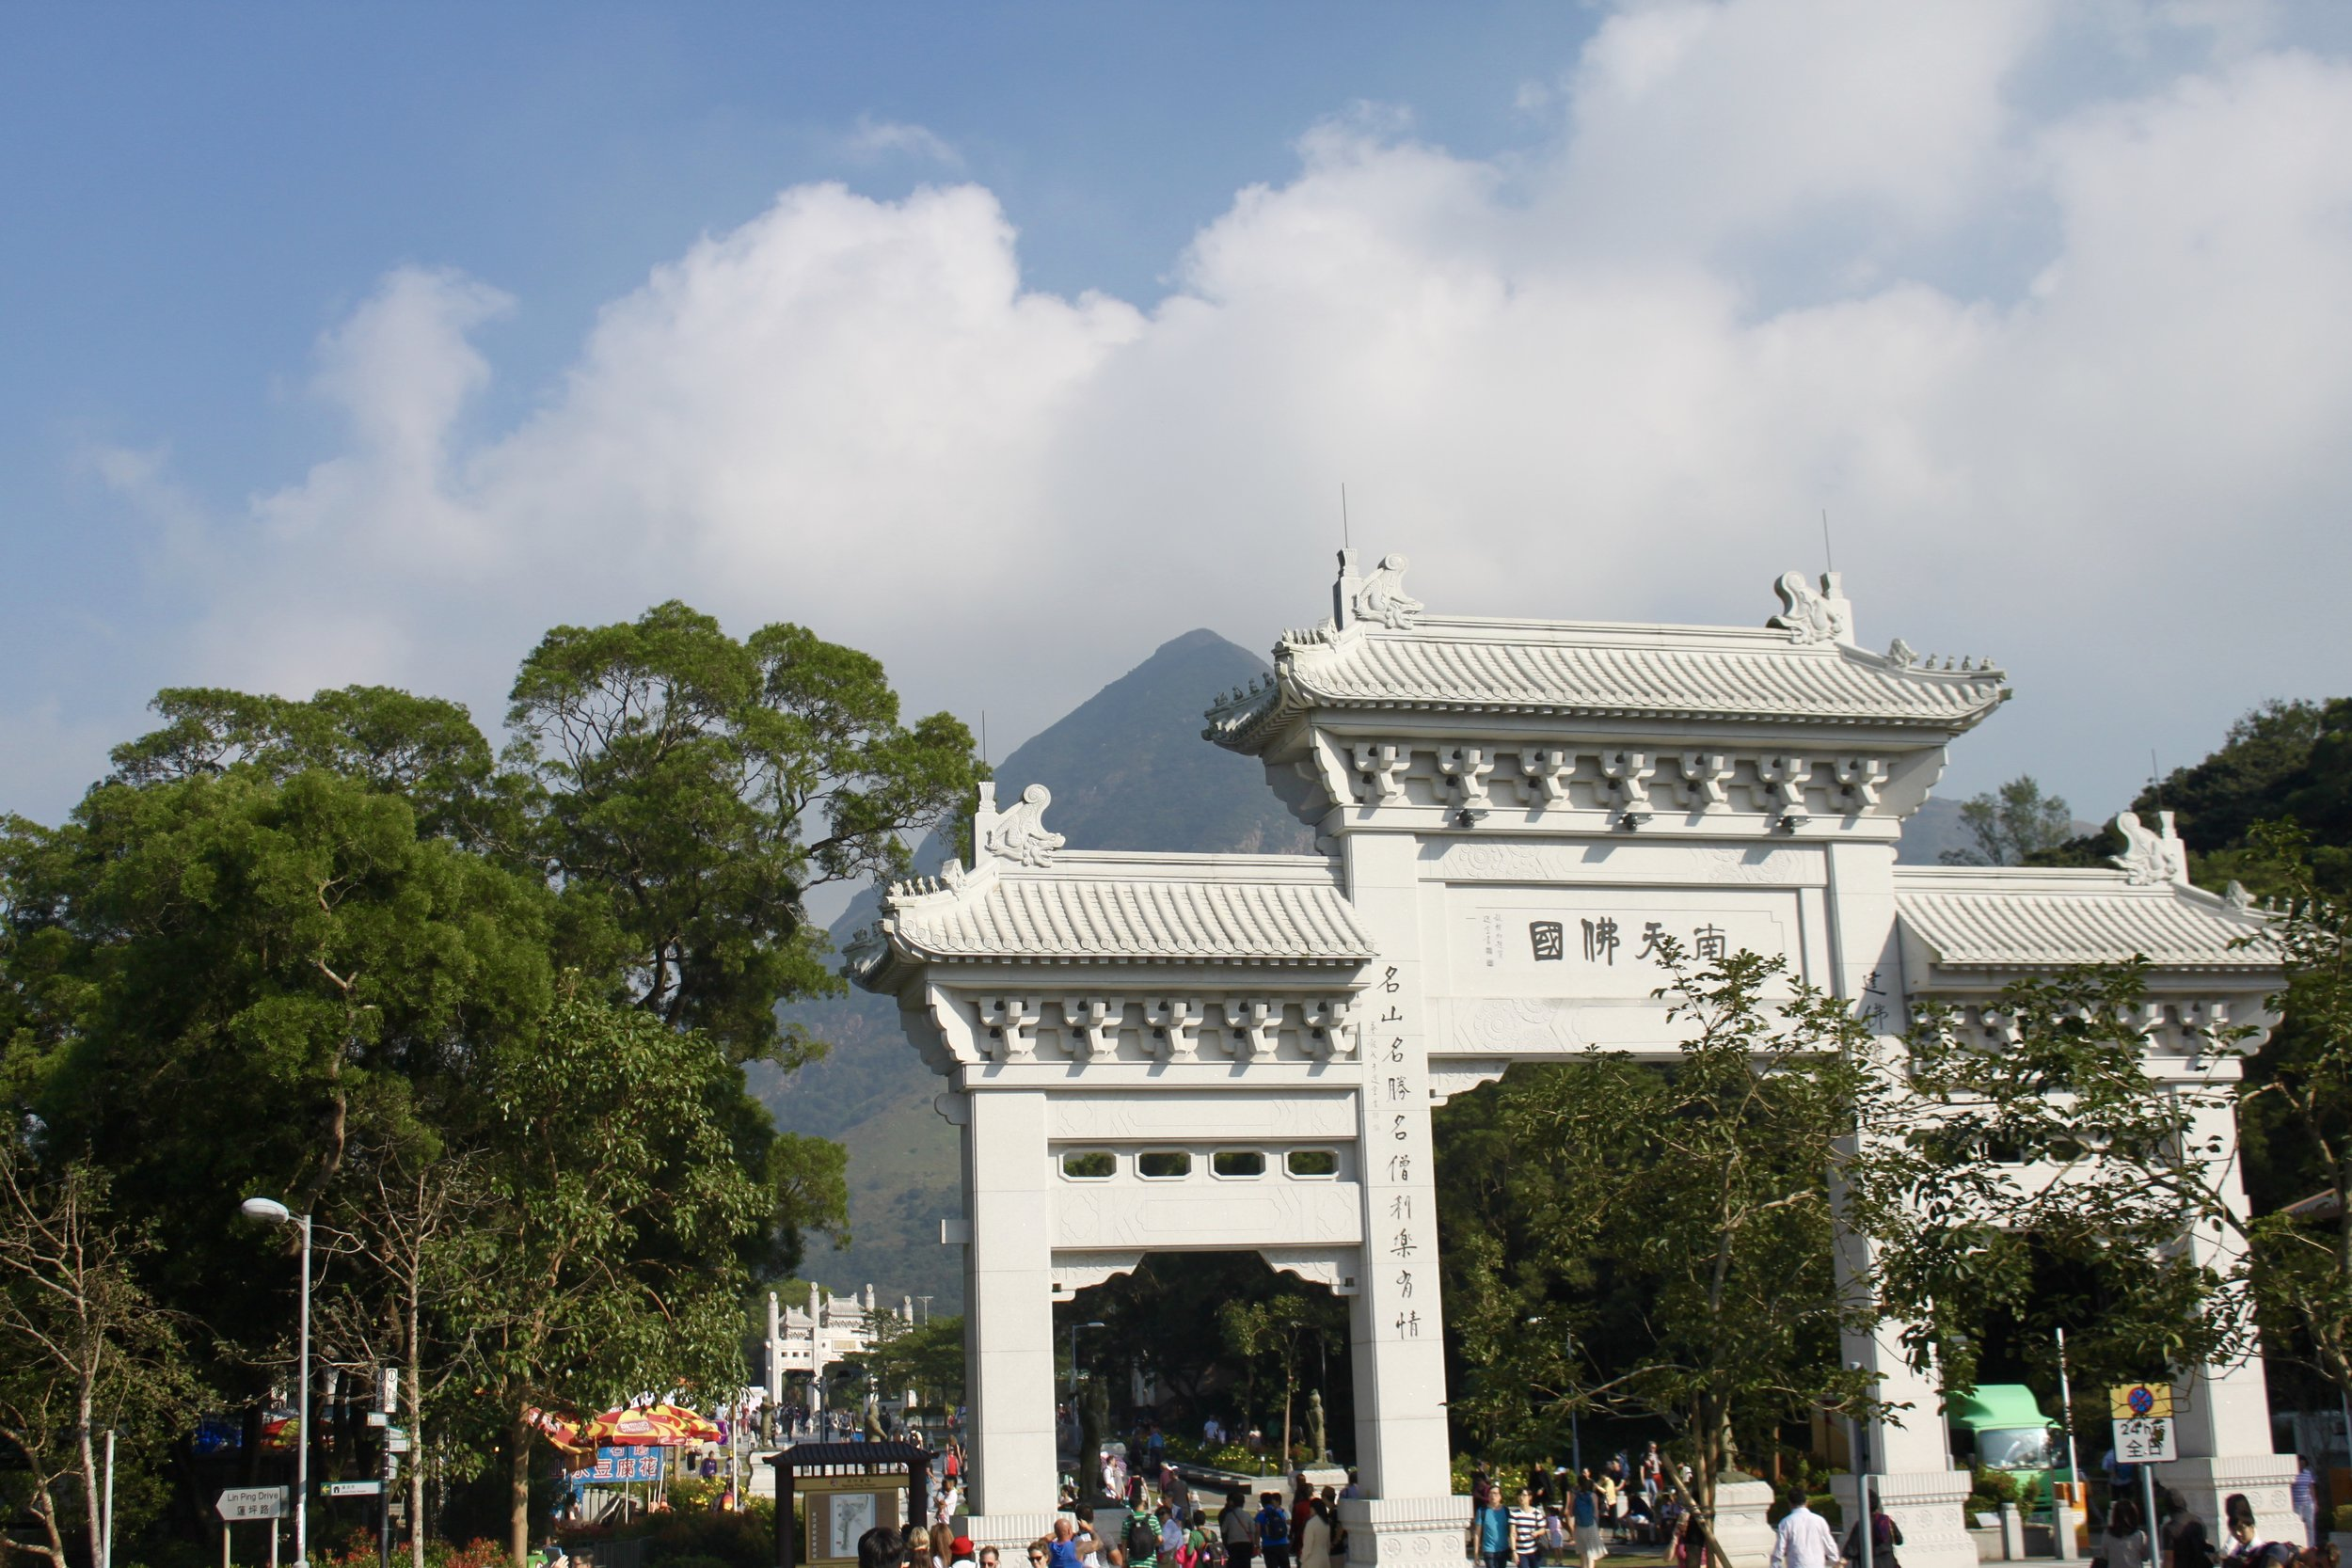 Temple Gate, Tian Tan Buddha